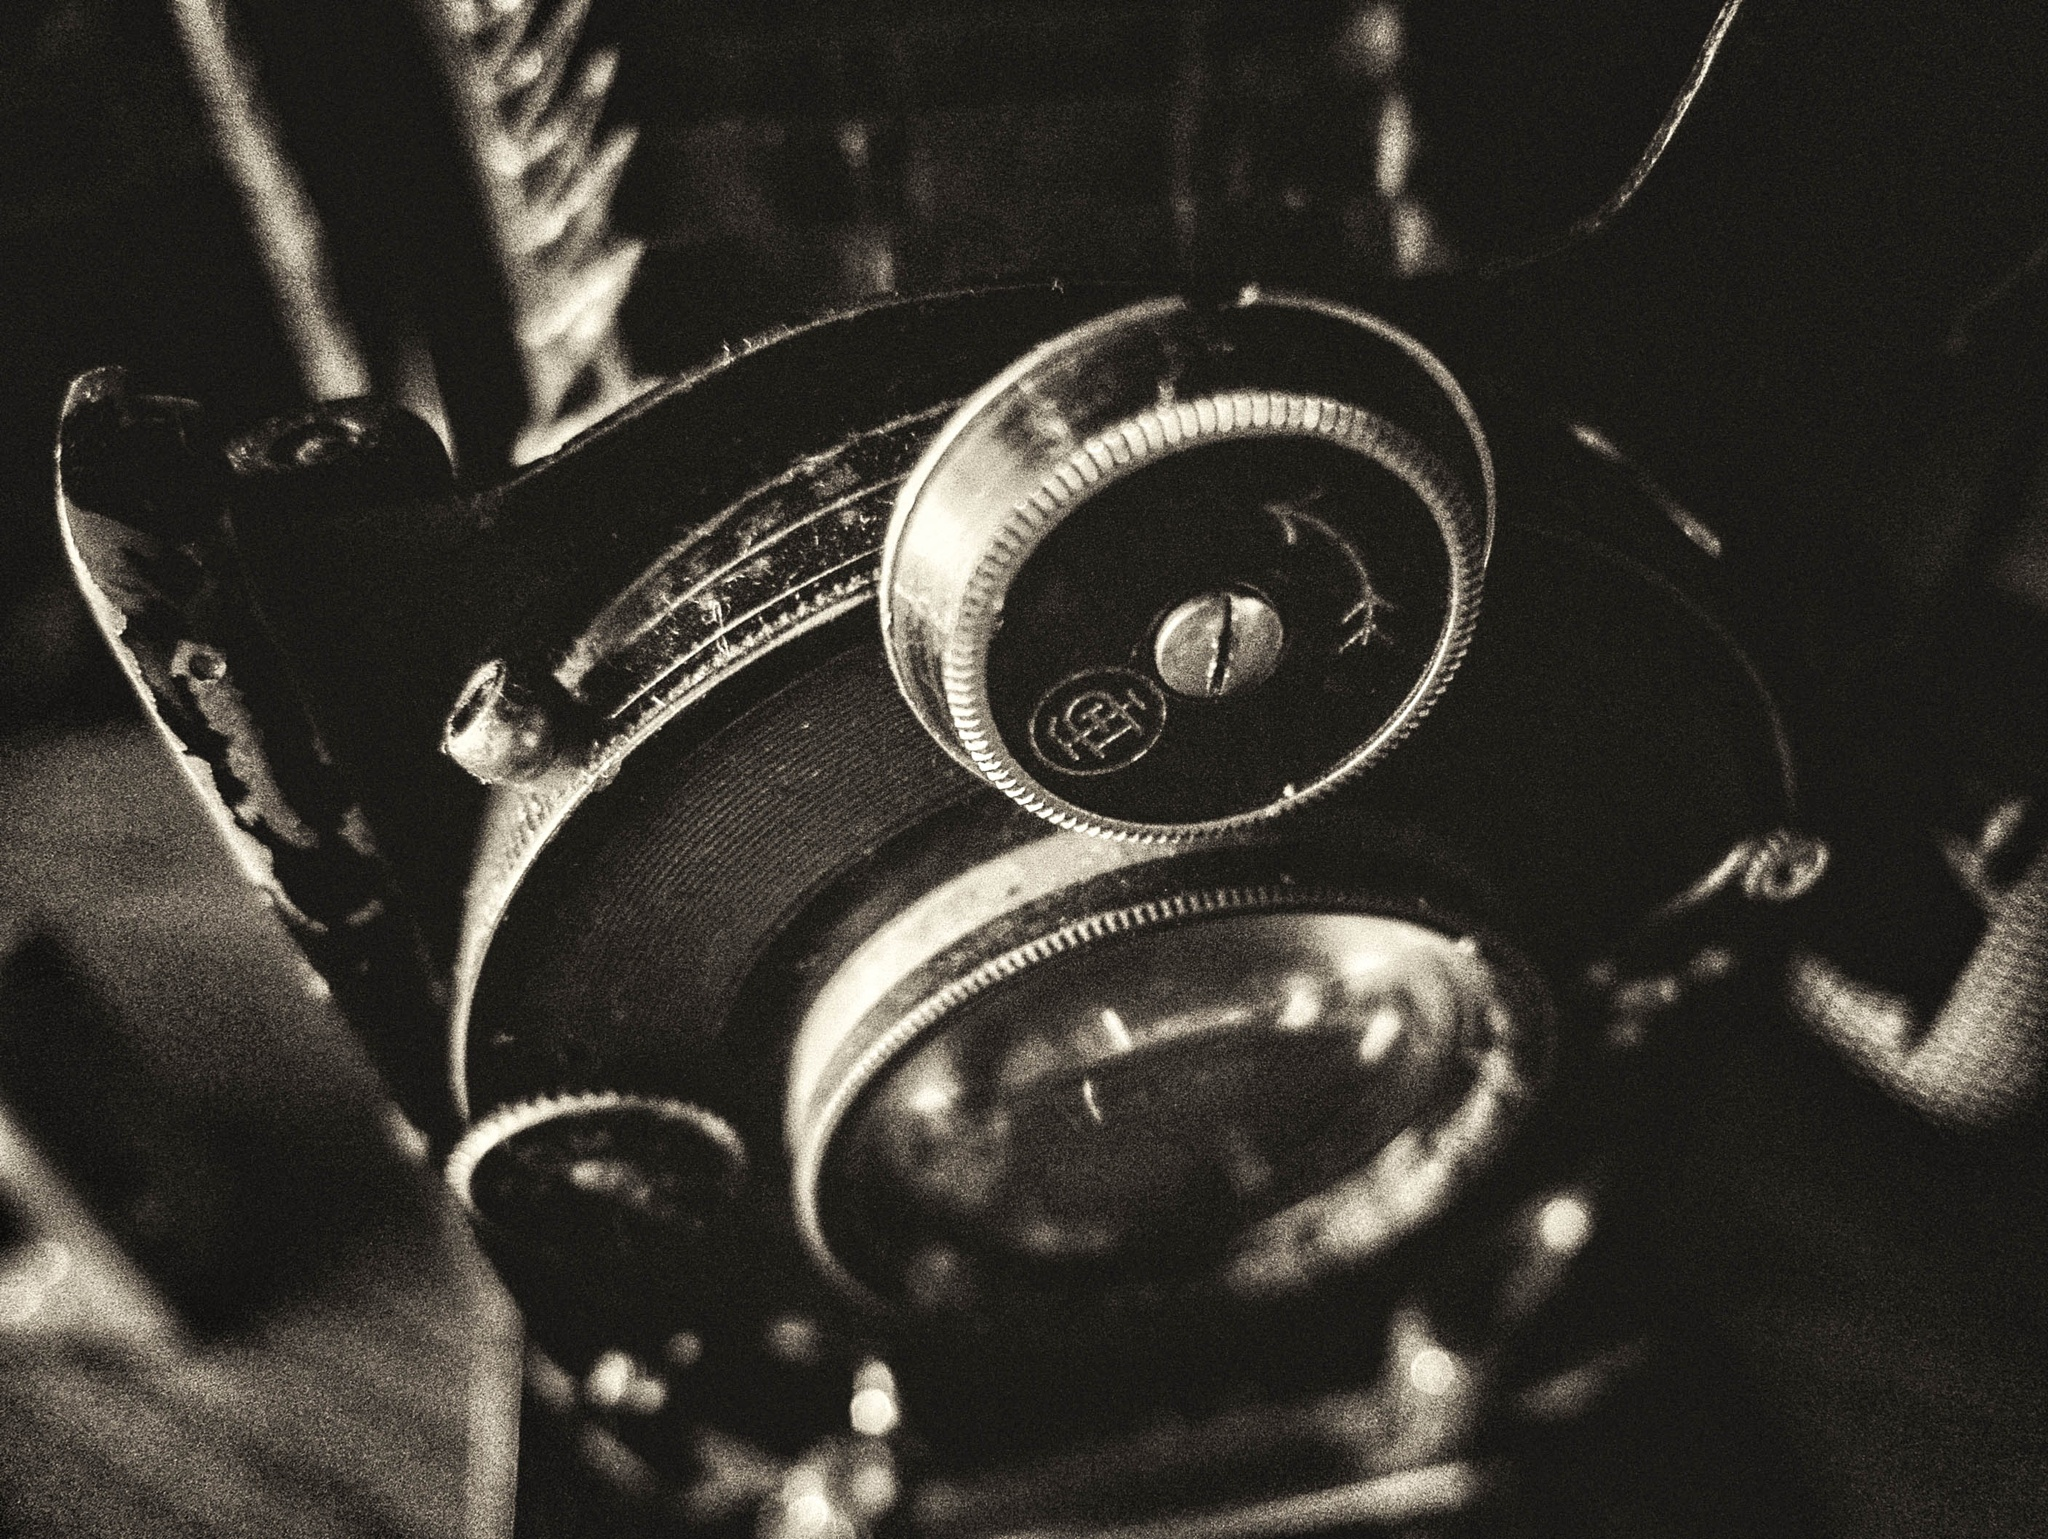 old camera by nicu.sbiera